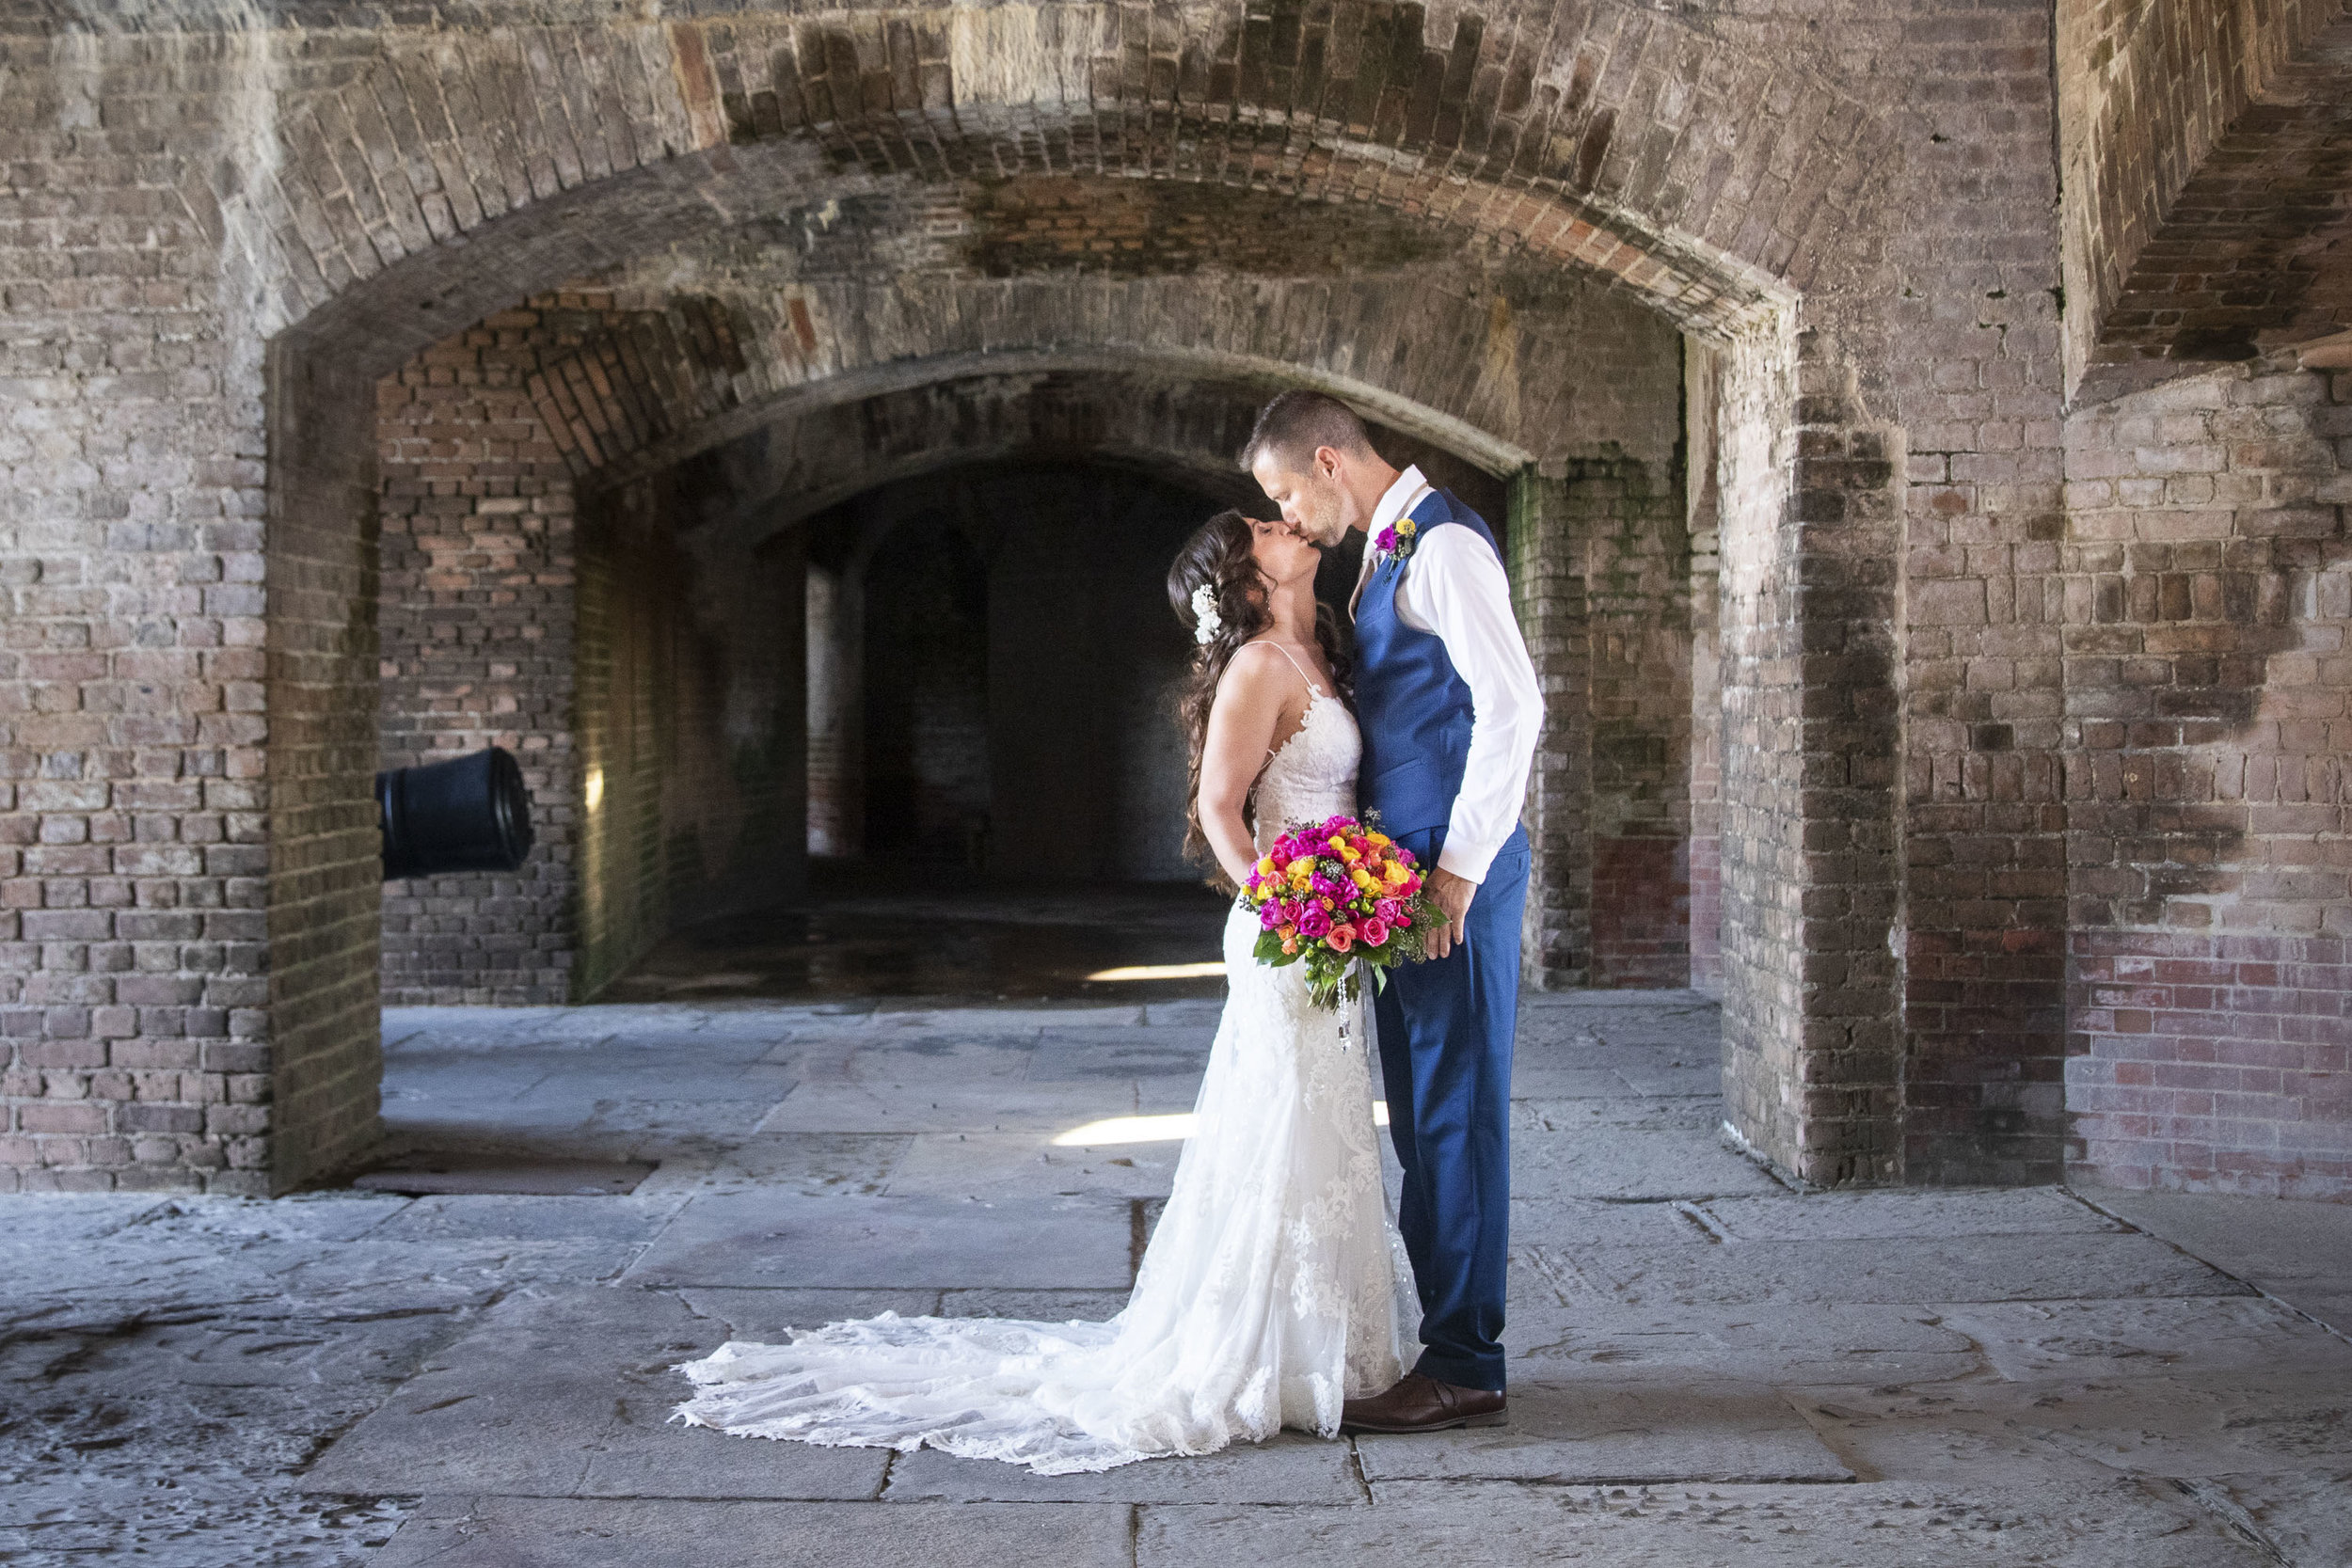 Bride and groom kissing before their wedding